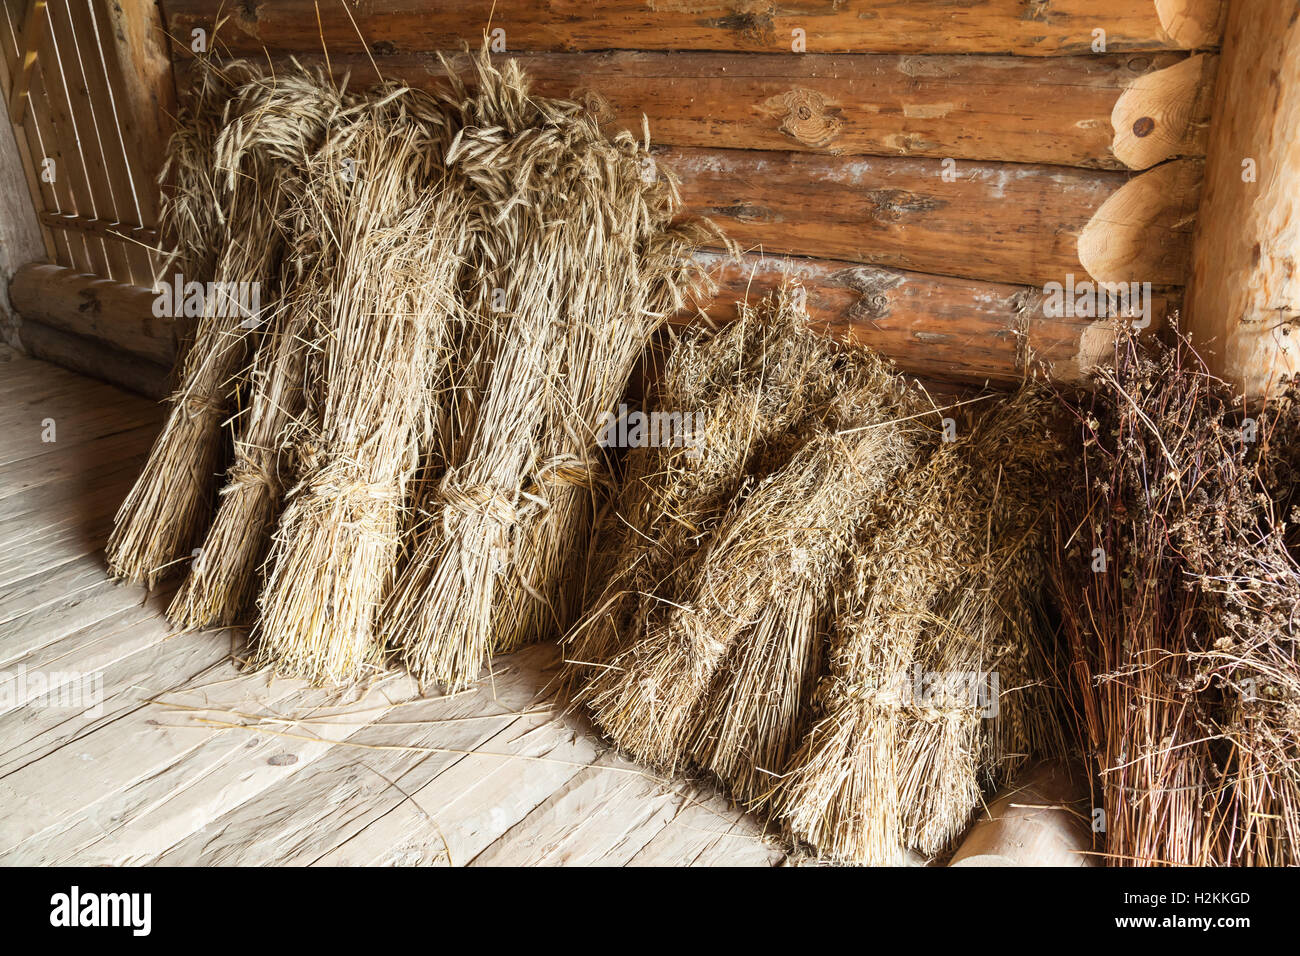 Hay Sheaves In Old Wooden Barn Interior Rural Russian Objects